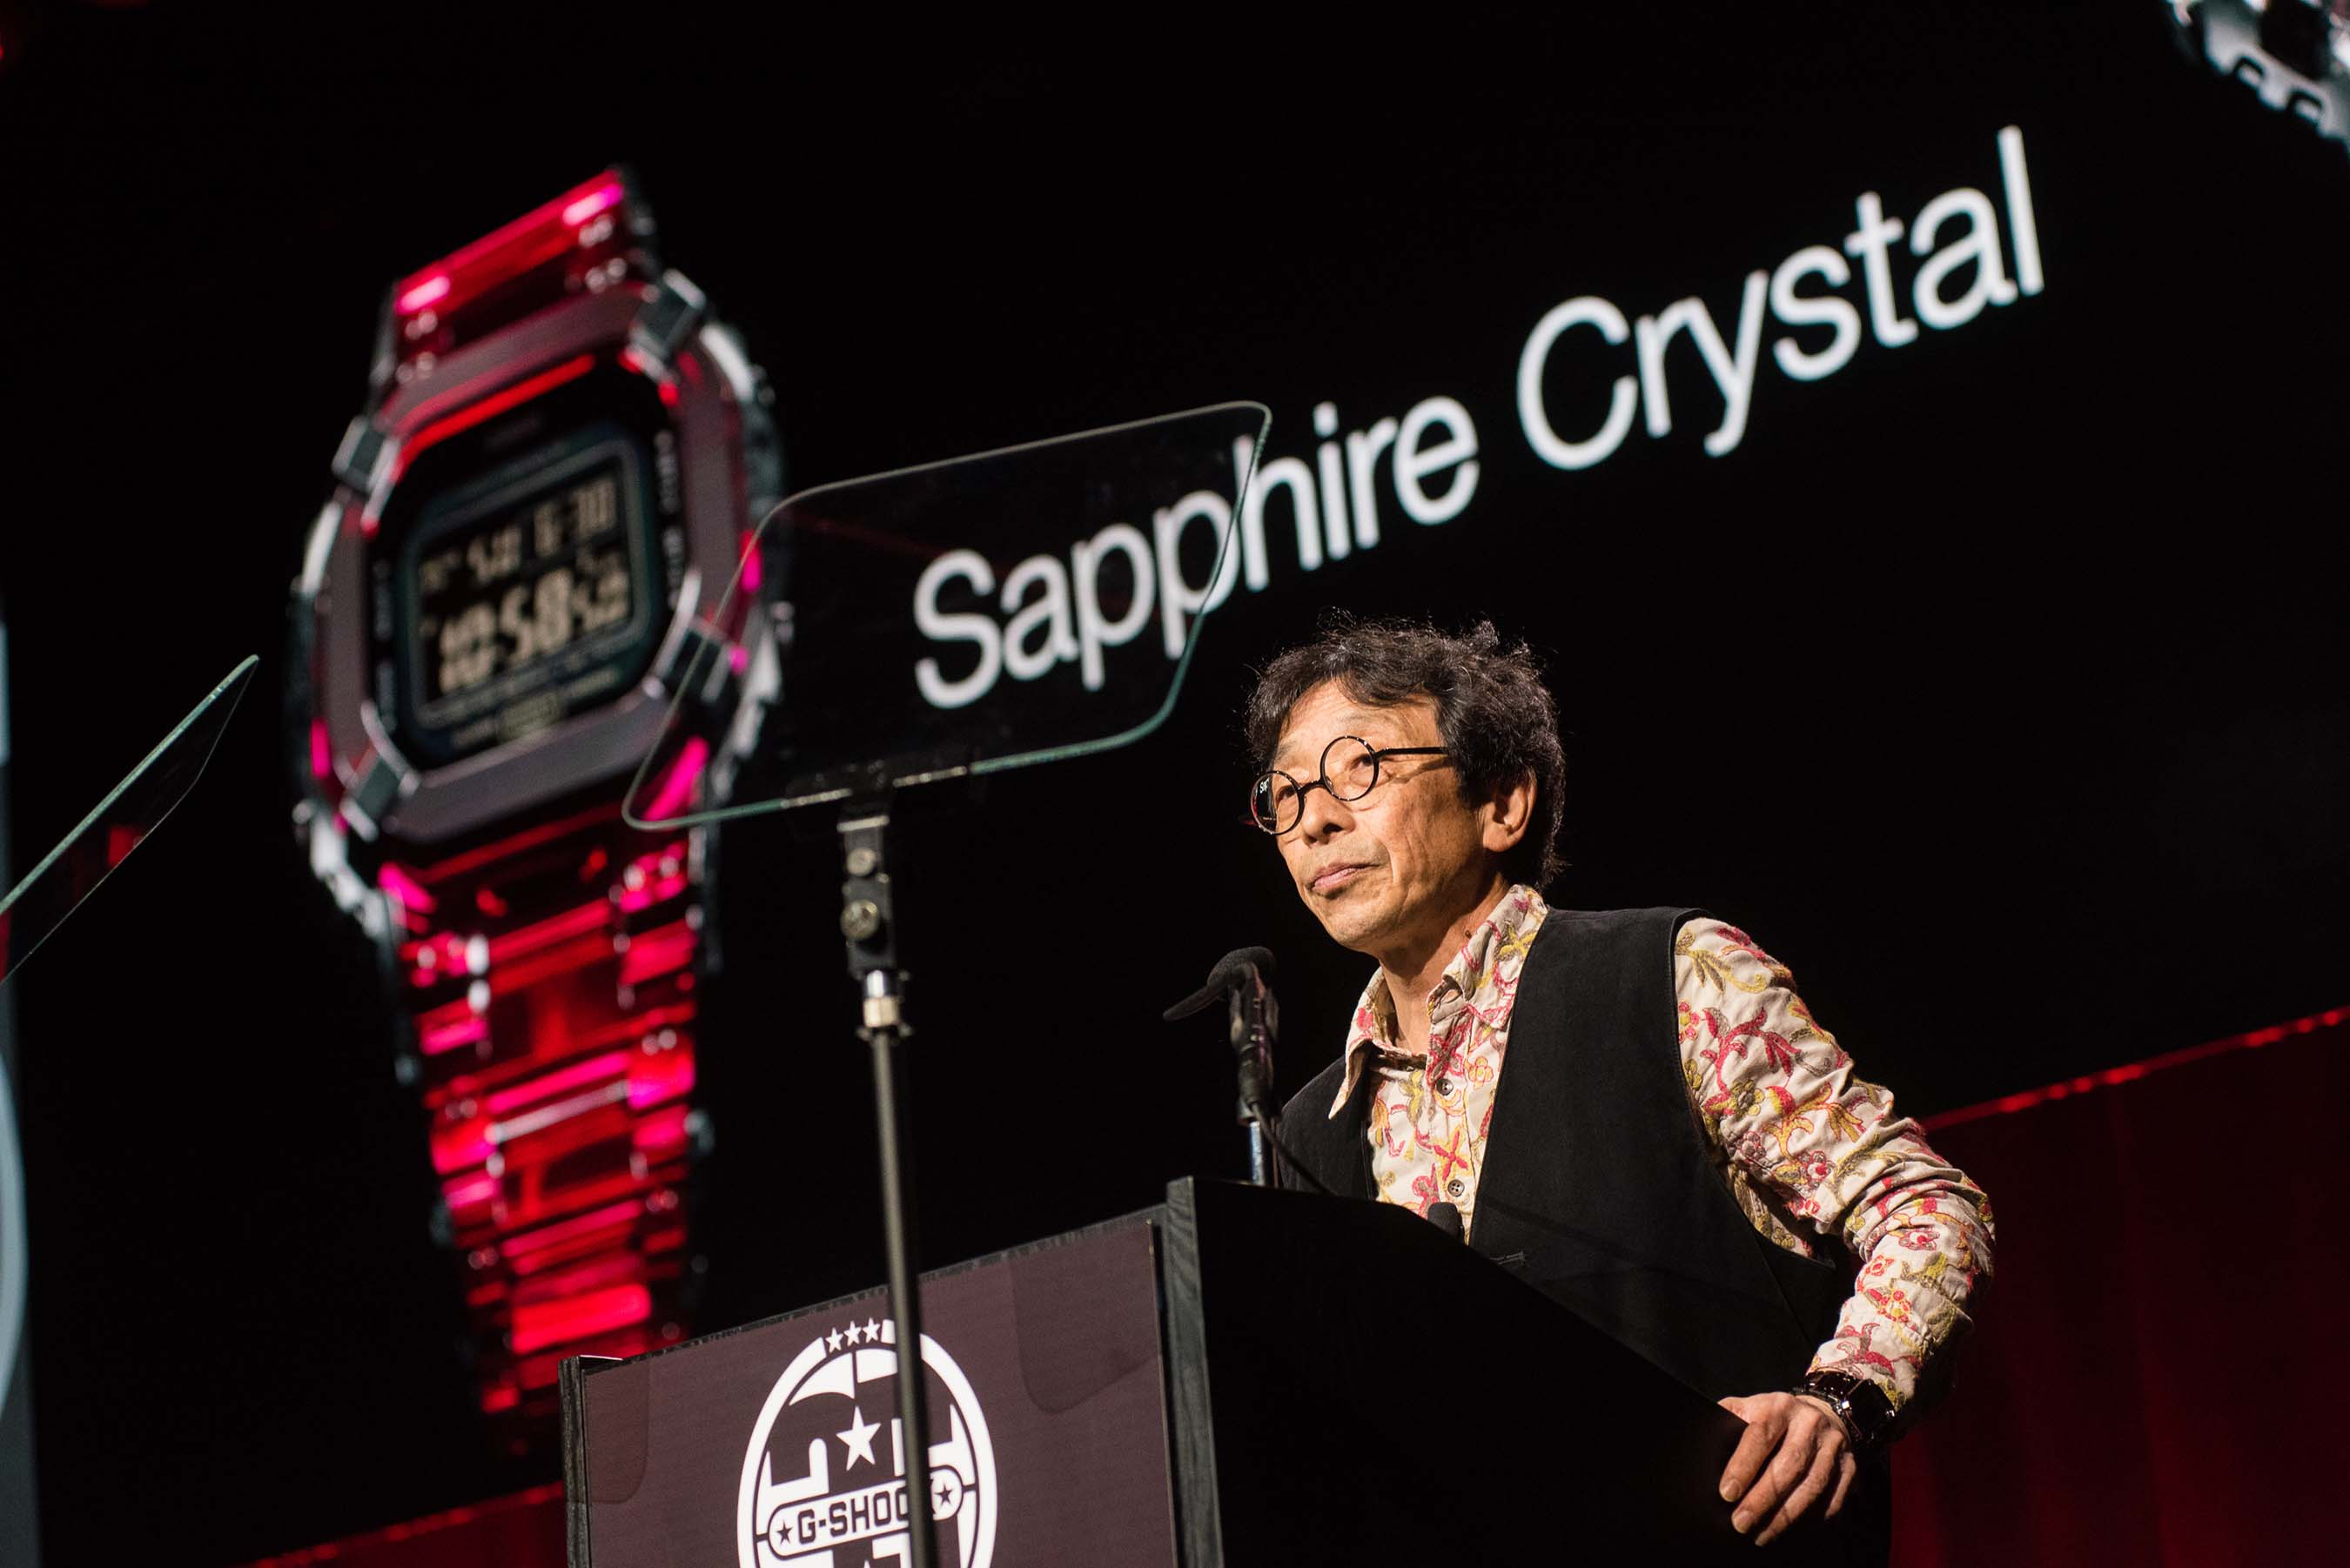 G-SHOCK Chronicles 35 Years Of Innovation